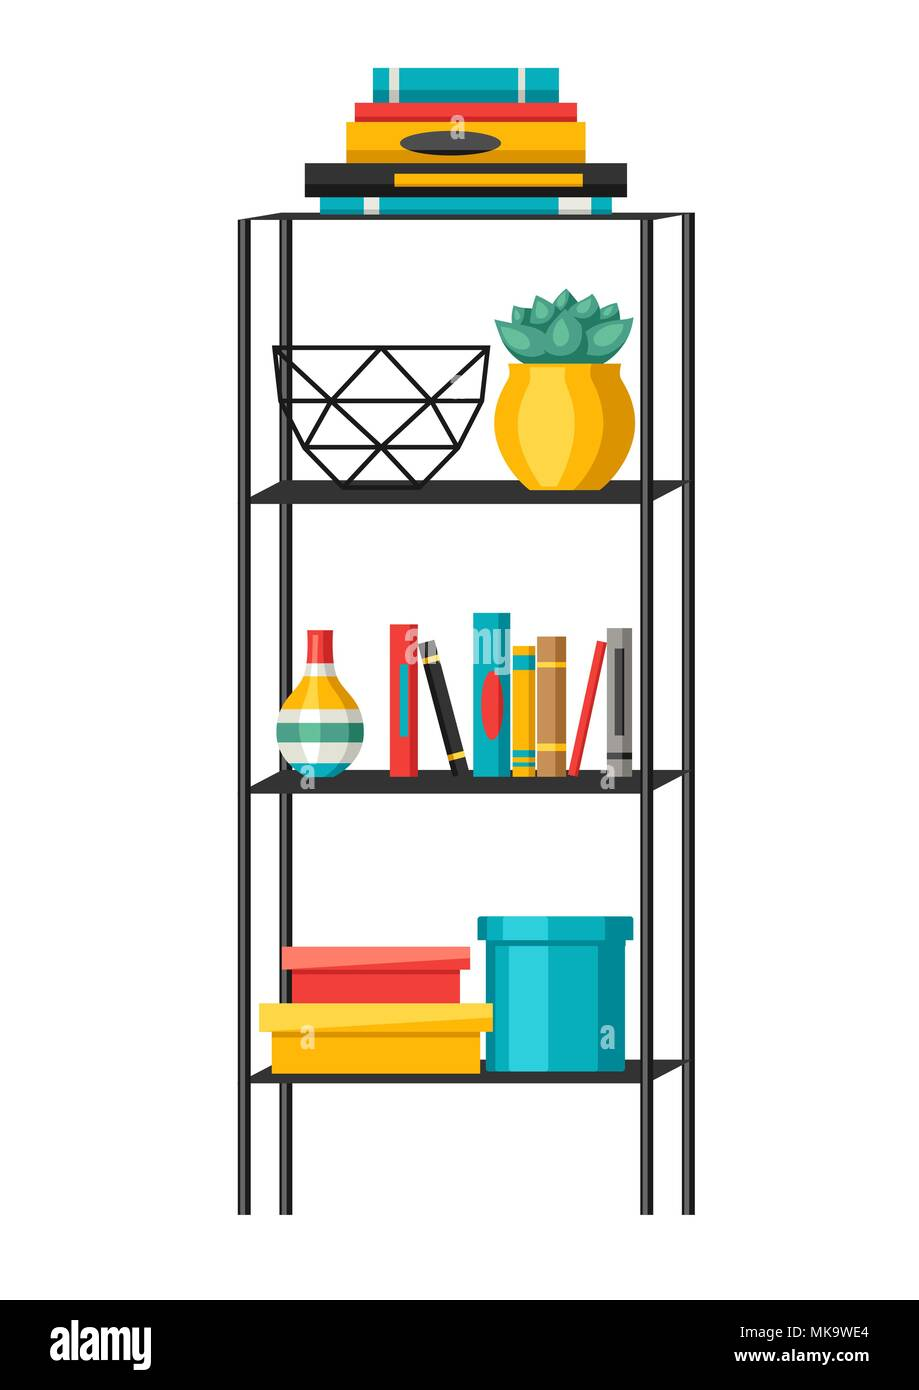 Interior home decor. Shelves with books and vases. - Stock Image